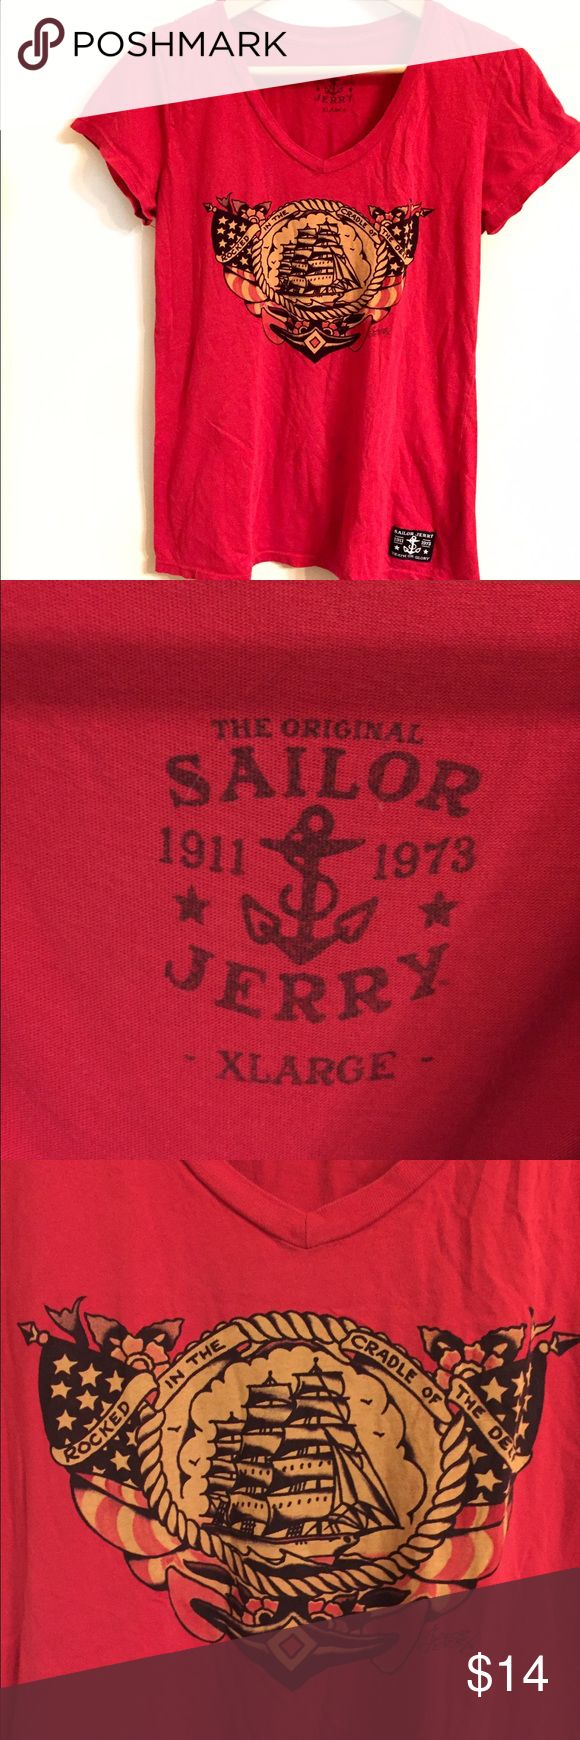 "Sailor Jerry Red V neck T Shirt with Ship Print The Original Sailor Jerry red women's tee XL.  Ship and flag graphic.  Patch label on hem ""Death or Glory"" Length 26"" armpit to armpit 17"" Sailor Jerry Tops Tees - Short Sleeve"